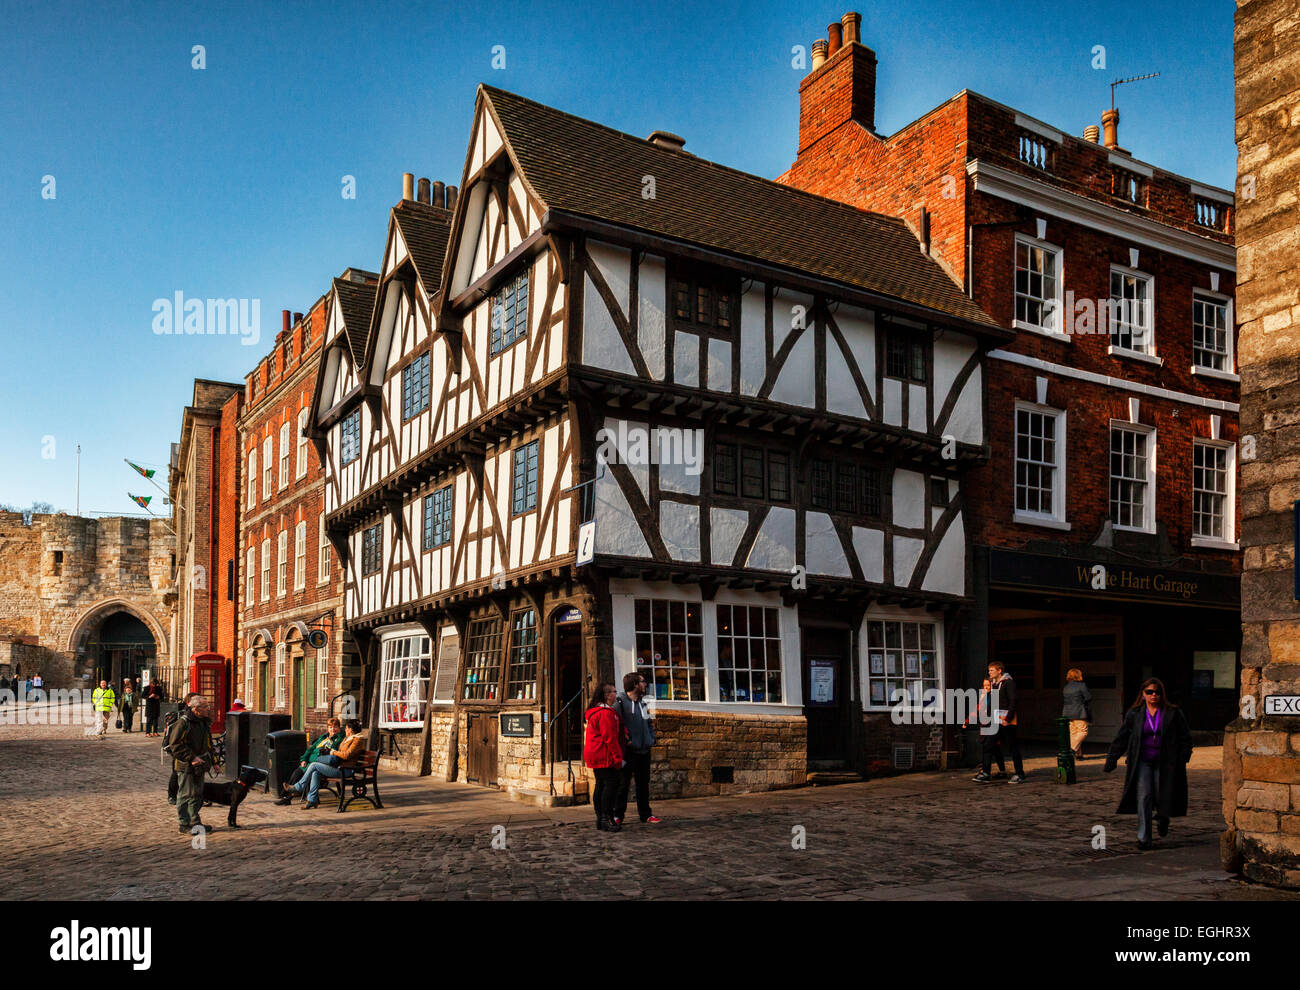 Tourist Information Office, Castle Hill, Lincoln, Lincolnshire, England, UK. - Stock Image